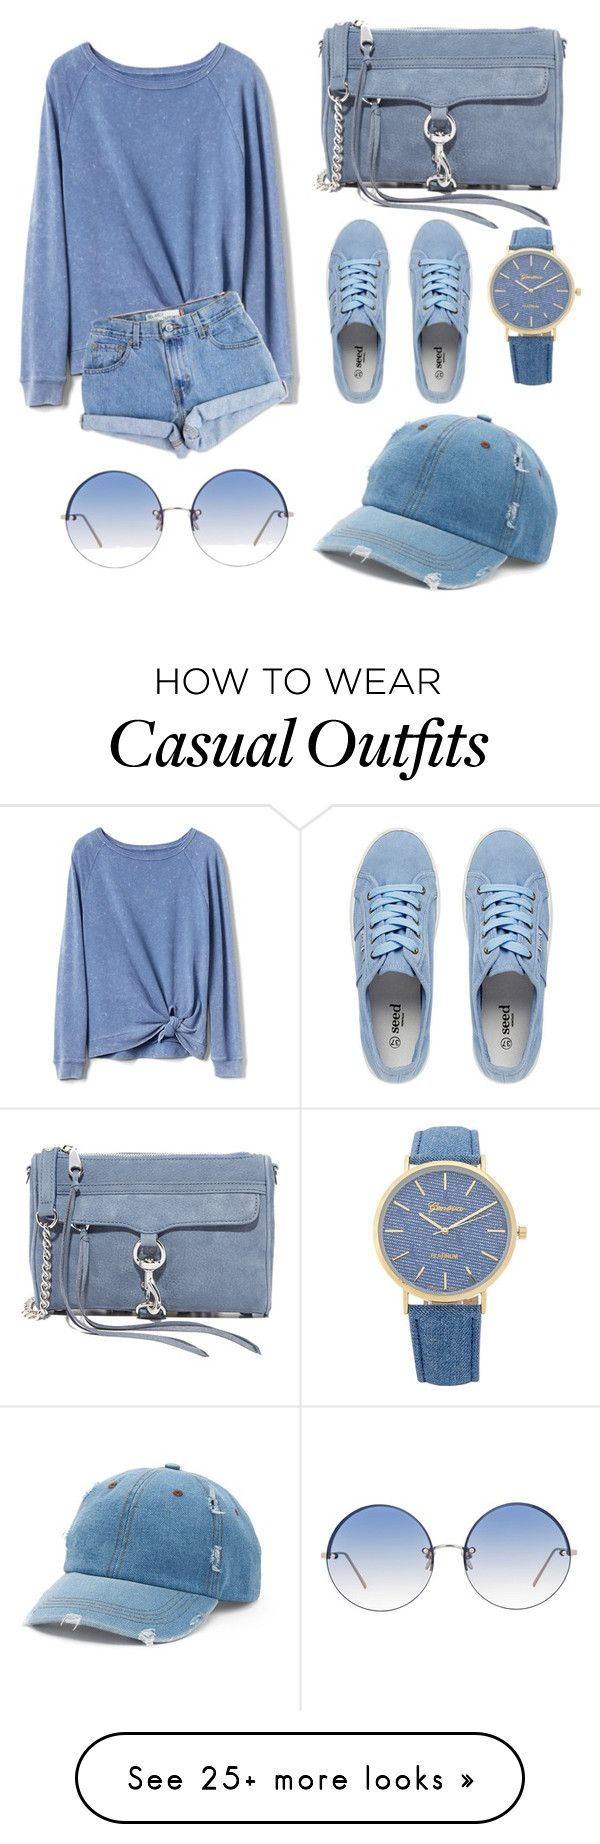 """for a sunny day yet chilly weather, your casual (blue) sunday afternoon look."" by scrindipity on Polyvore featuring Gap, Levi's, Rebecca Minkoff, Linda Farrow and Mudd"